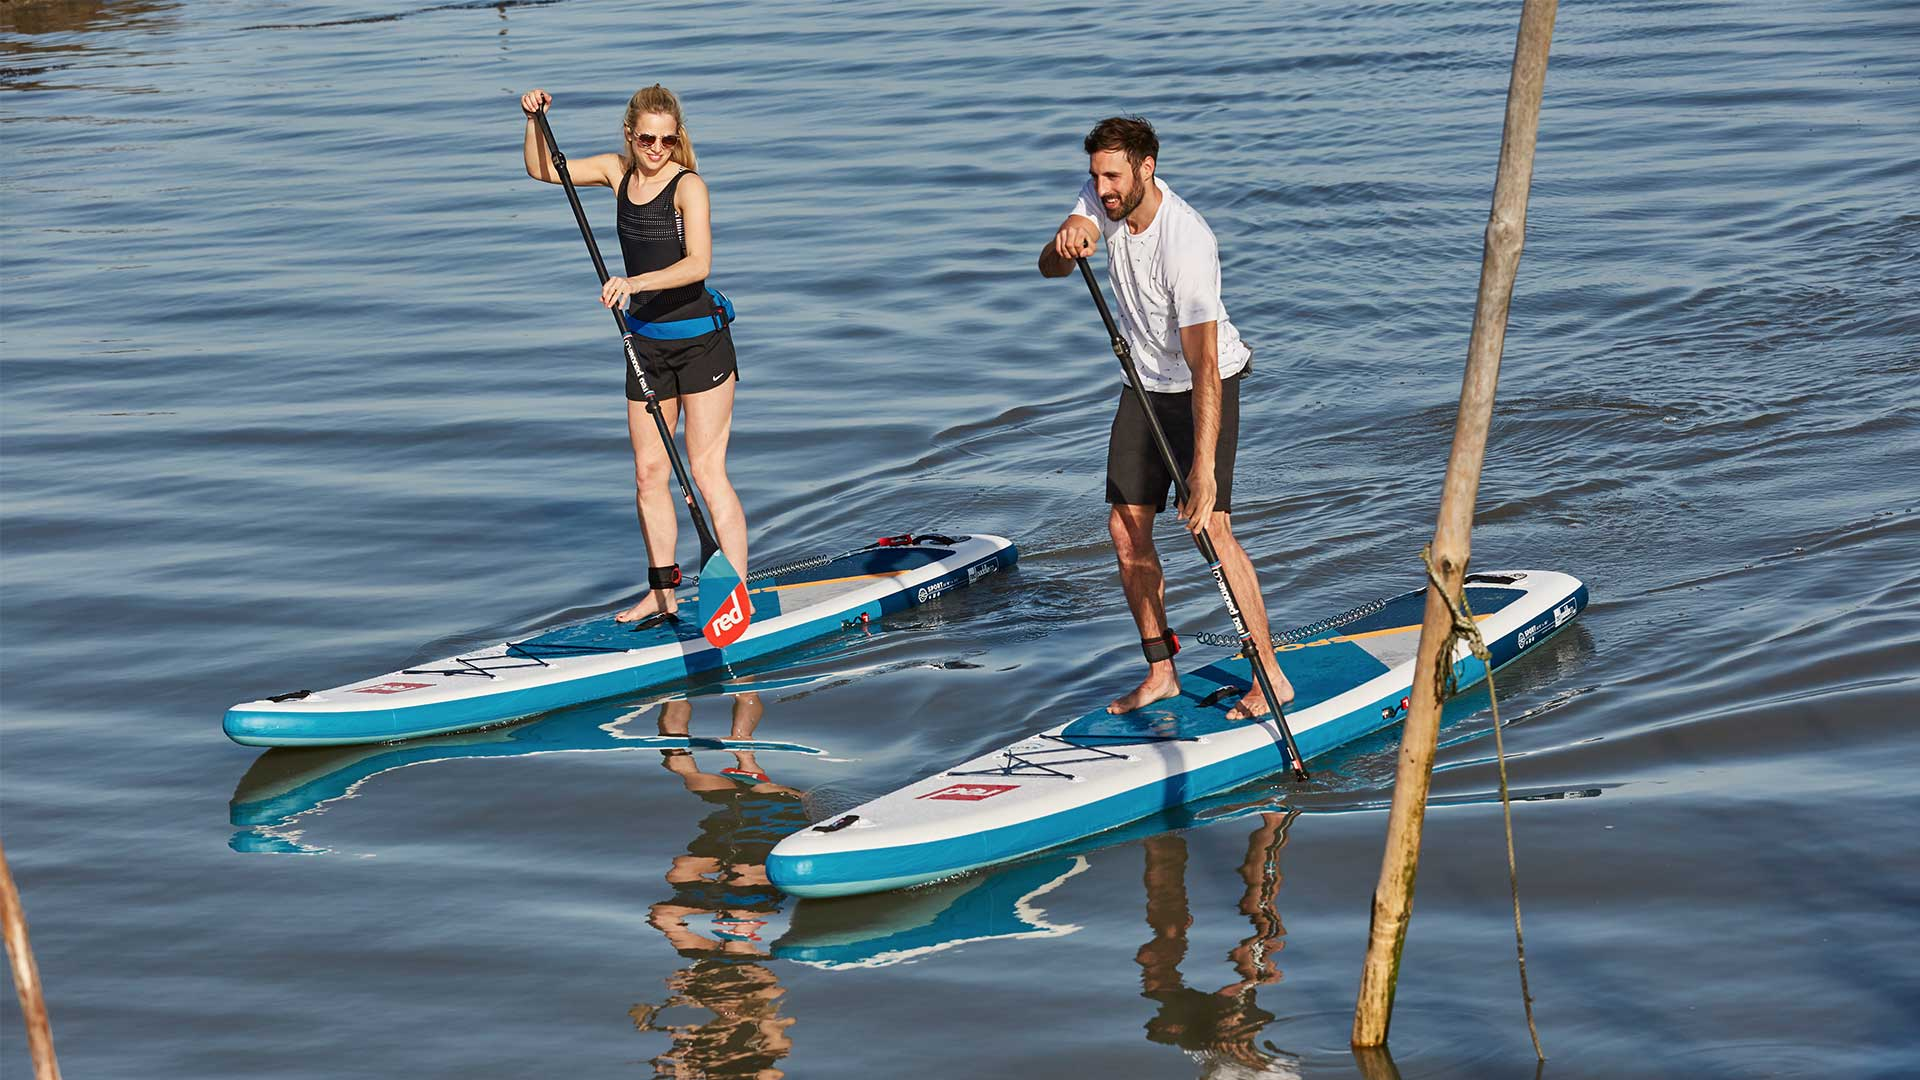 redpaddleco-110-sport-inflatable-paddle-board-desktop-gallery-1